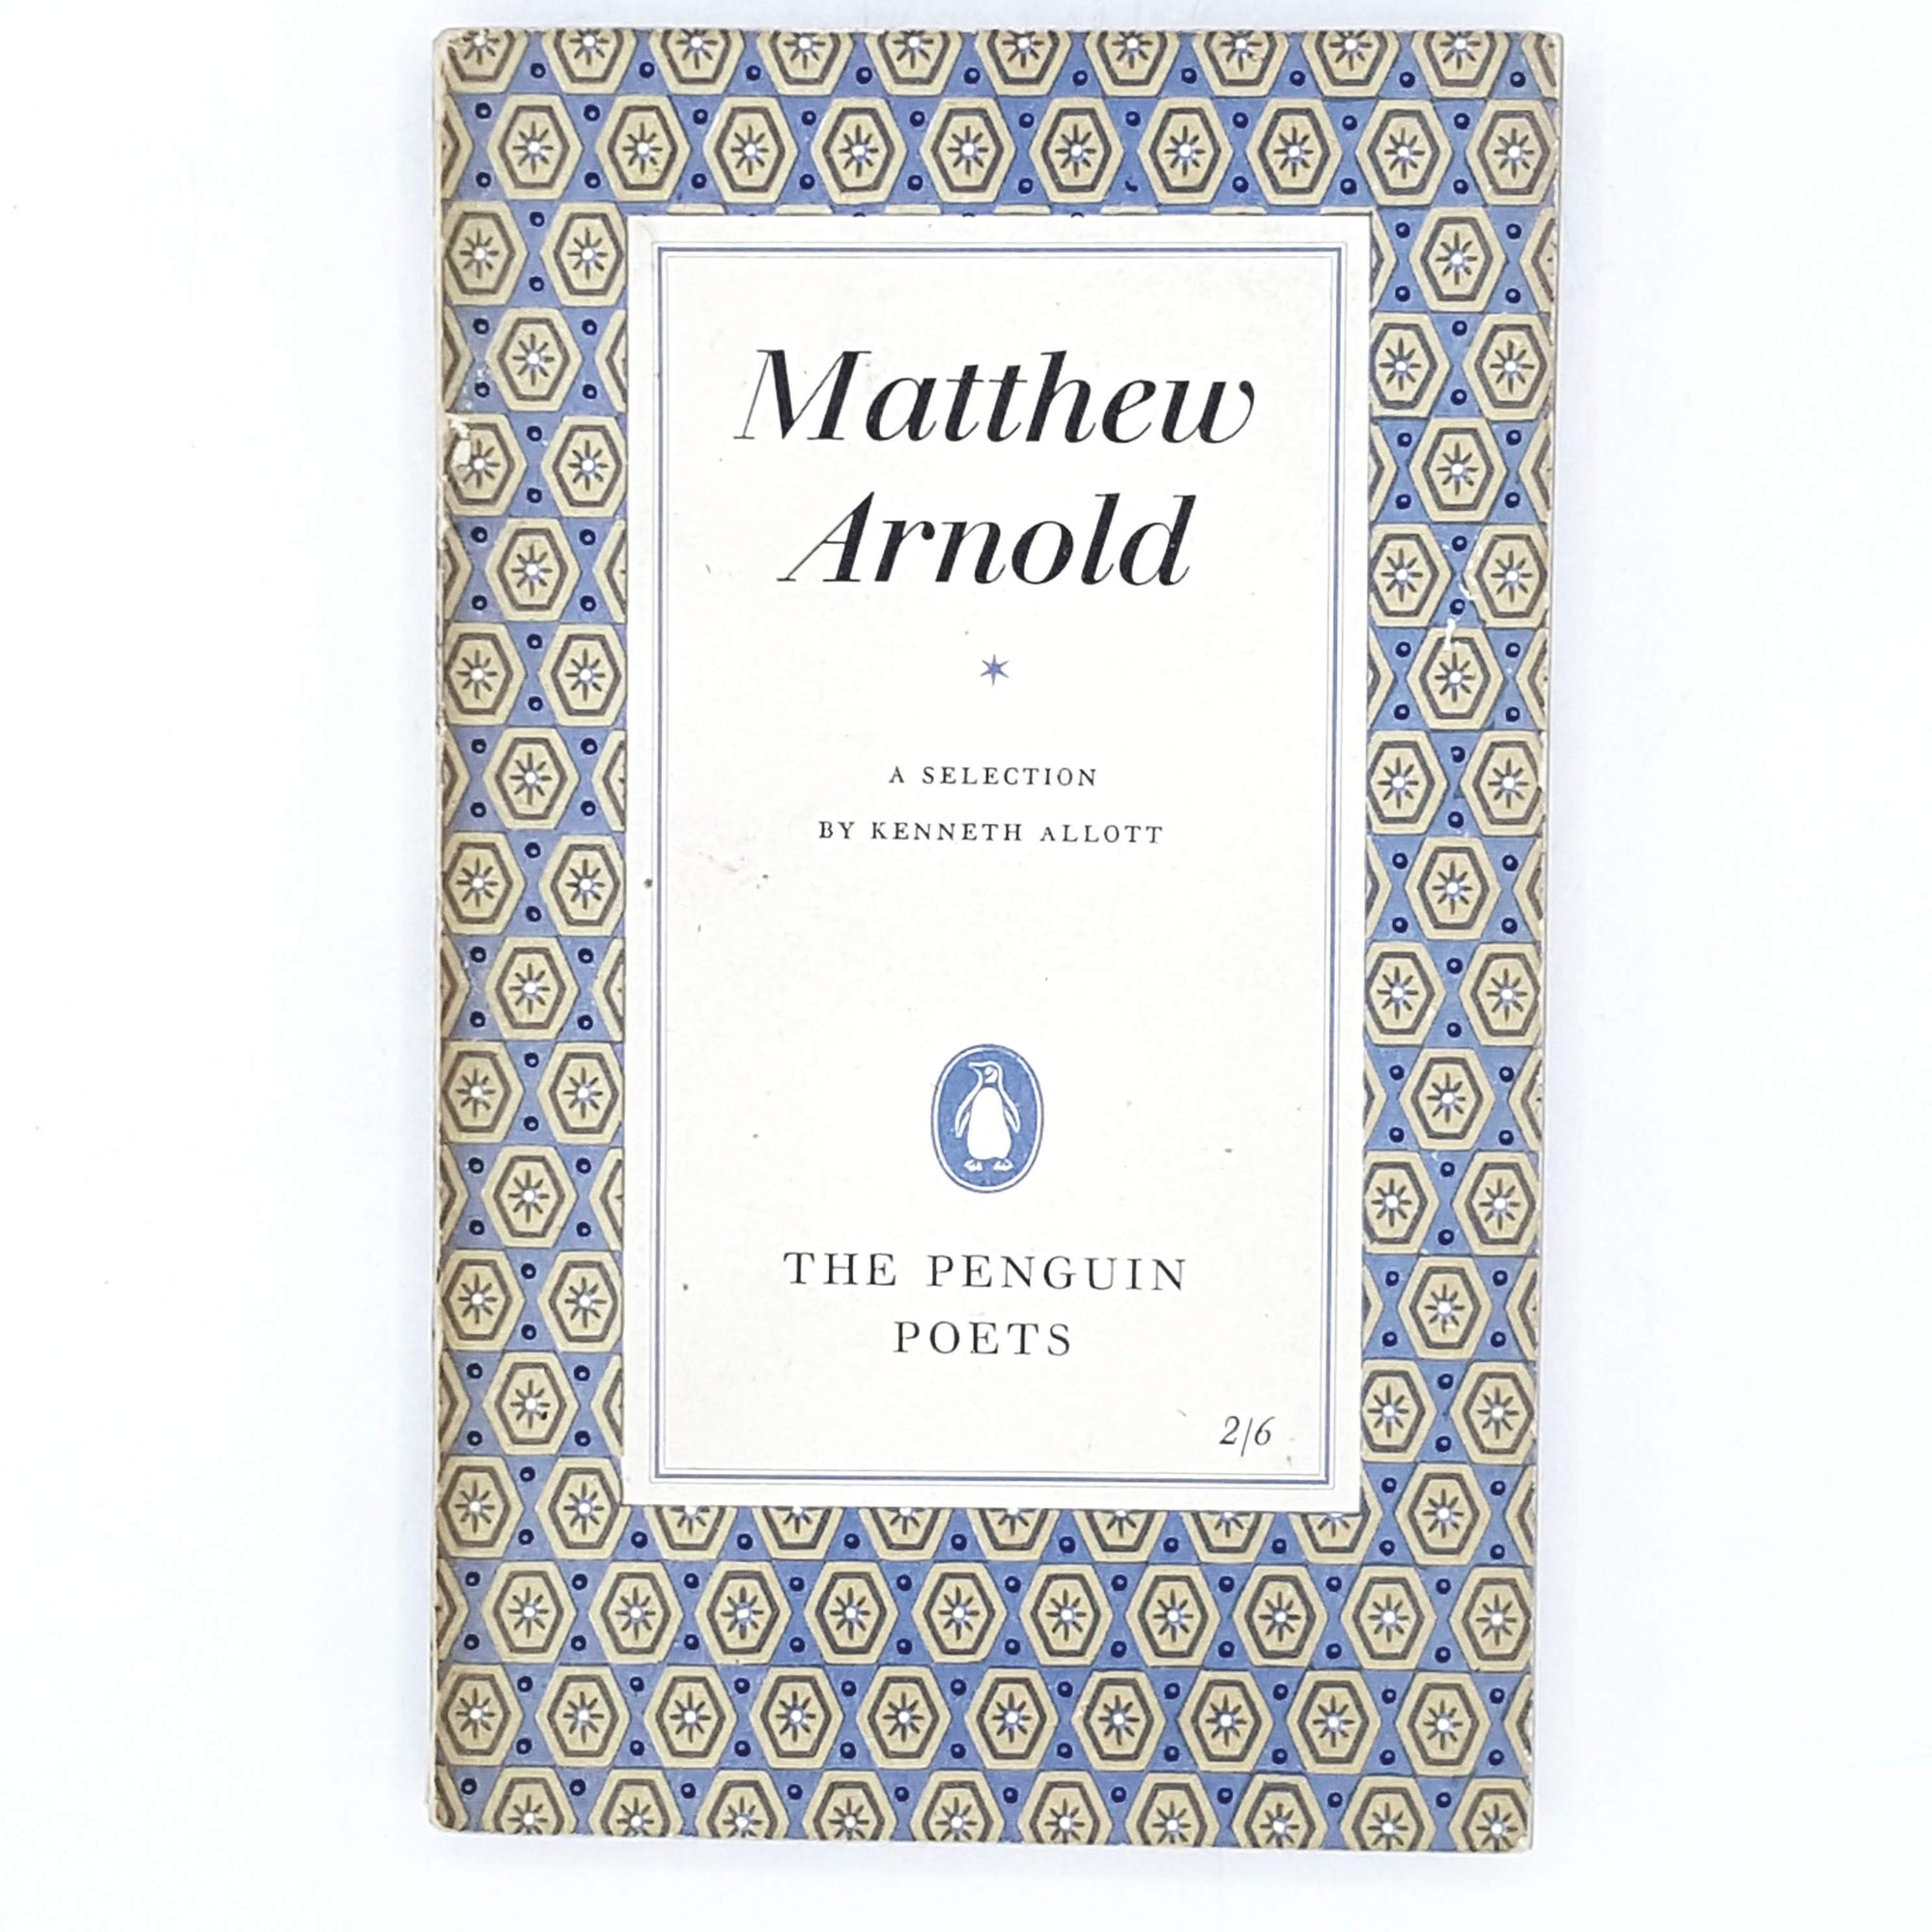 First Edition Penguin Matthew Arnold 1954